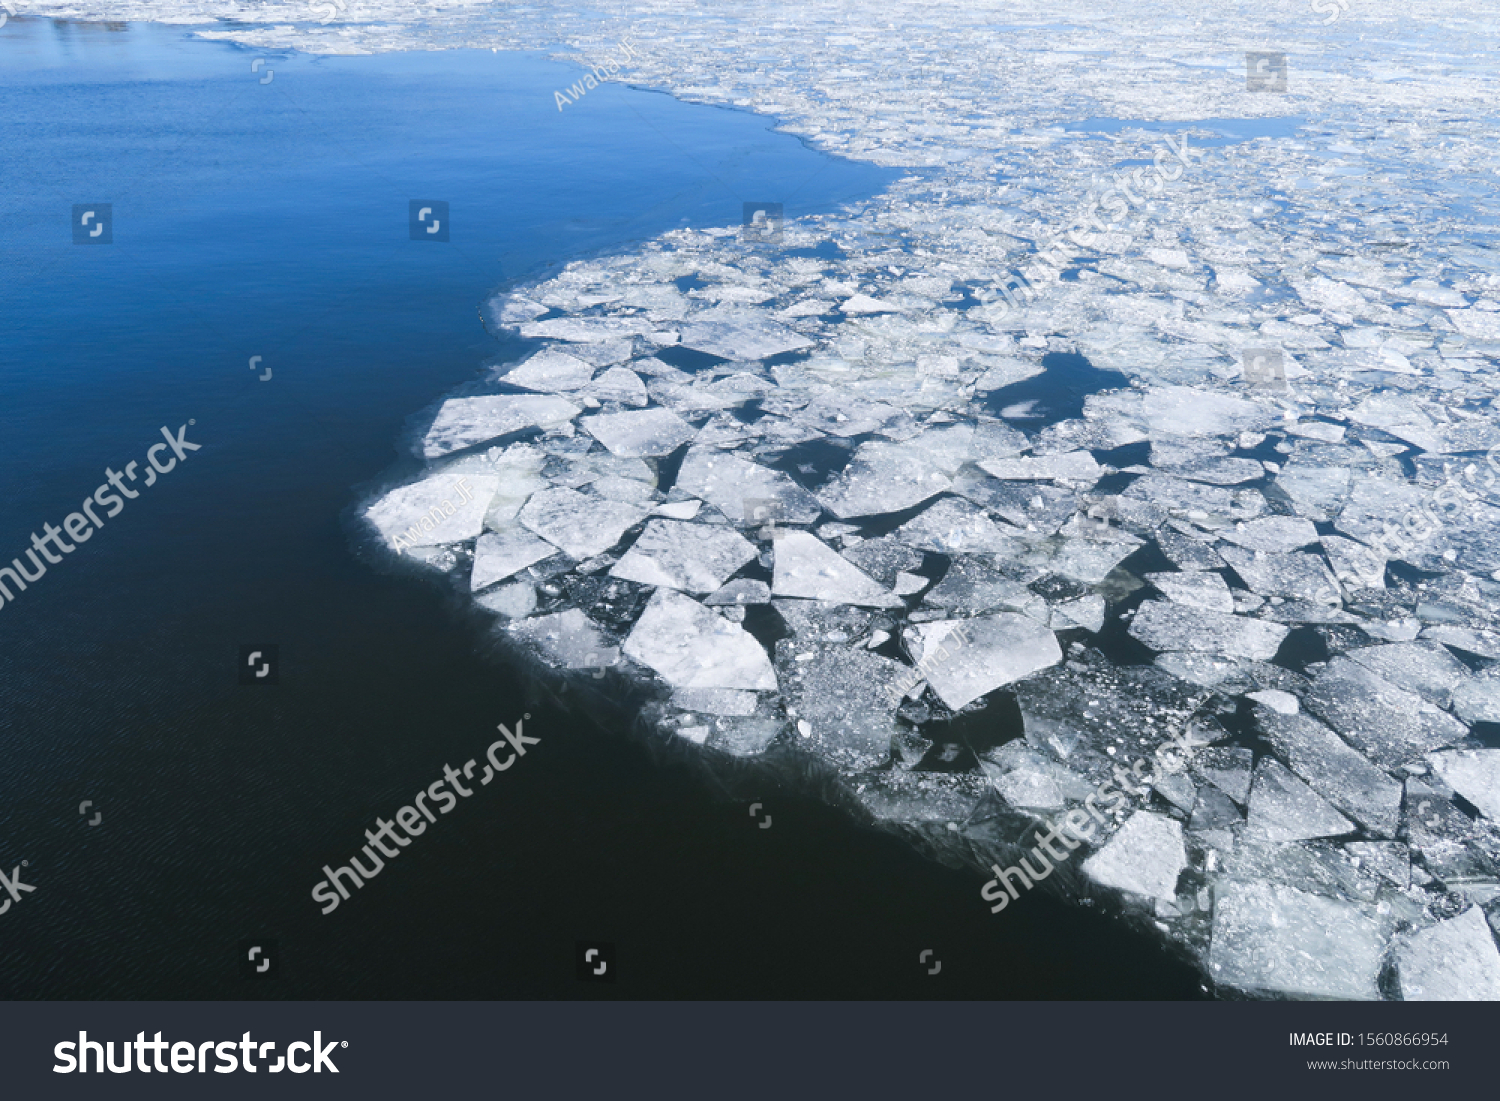 stock-photo-ice-on-st-laurent-river-in-w